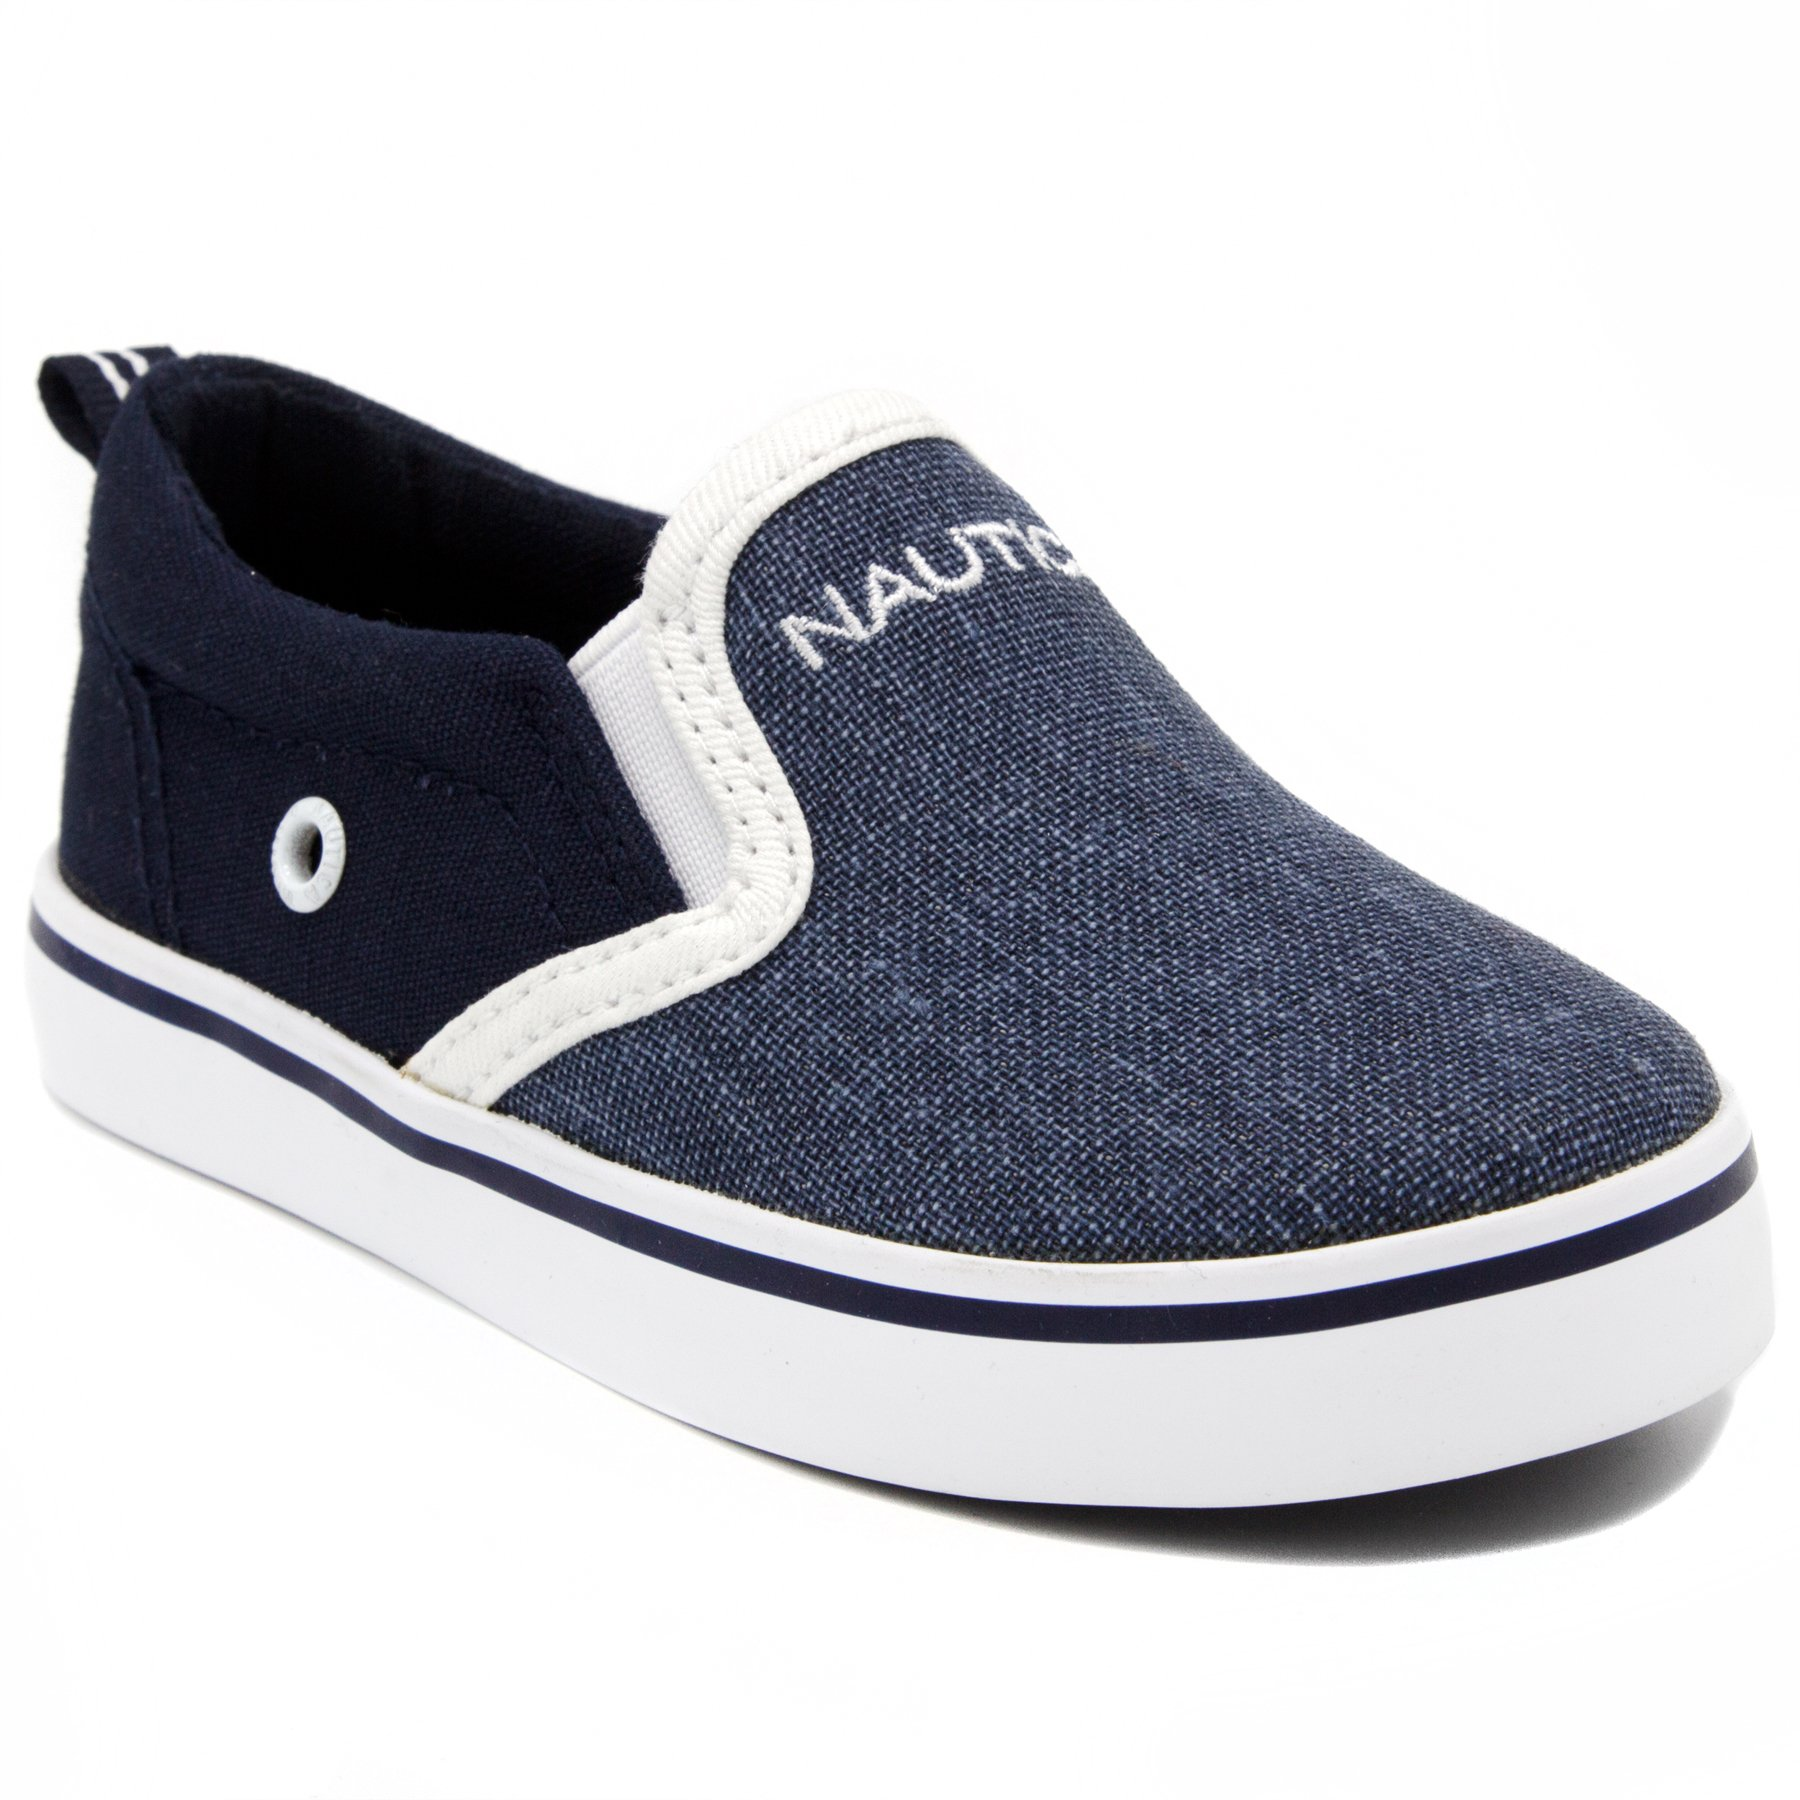 Nautica Akeley Toddler Canvas Sneaker Slip-On Casual Shoes-Navy Mix-10